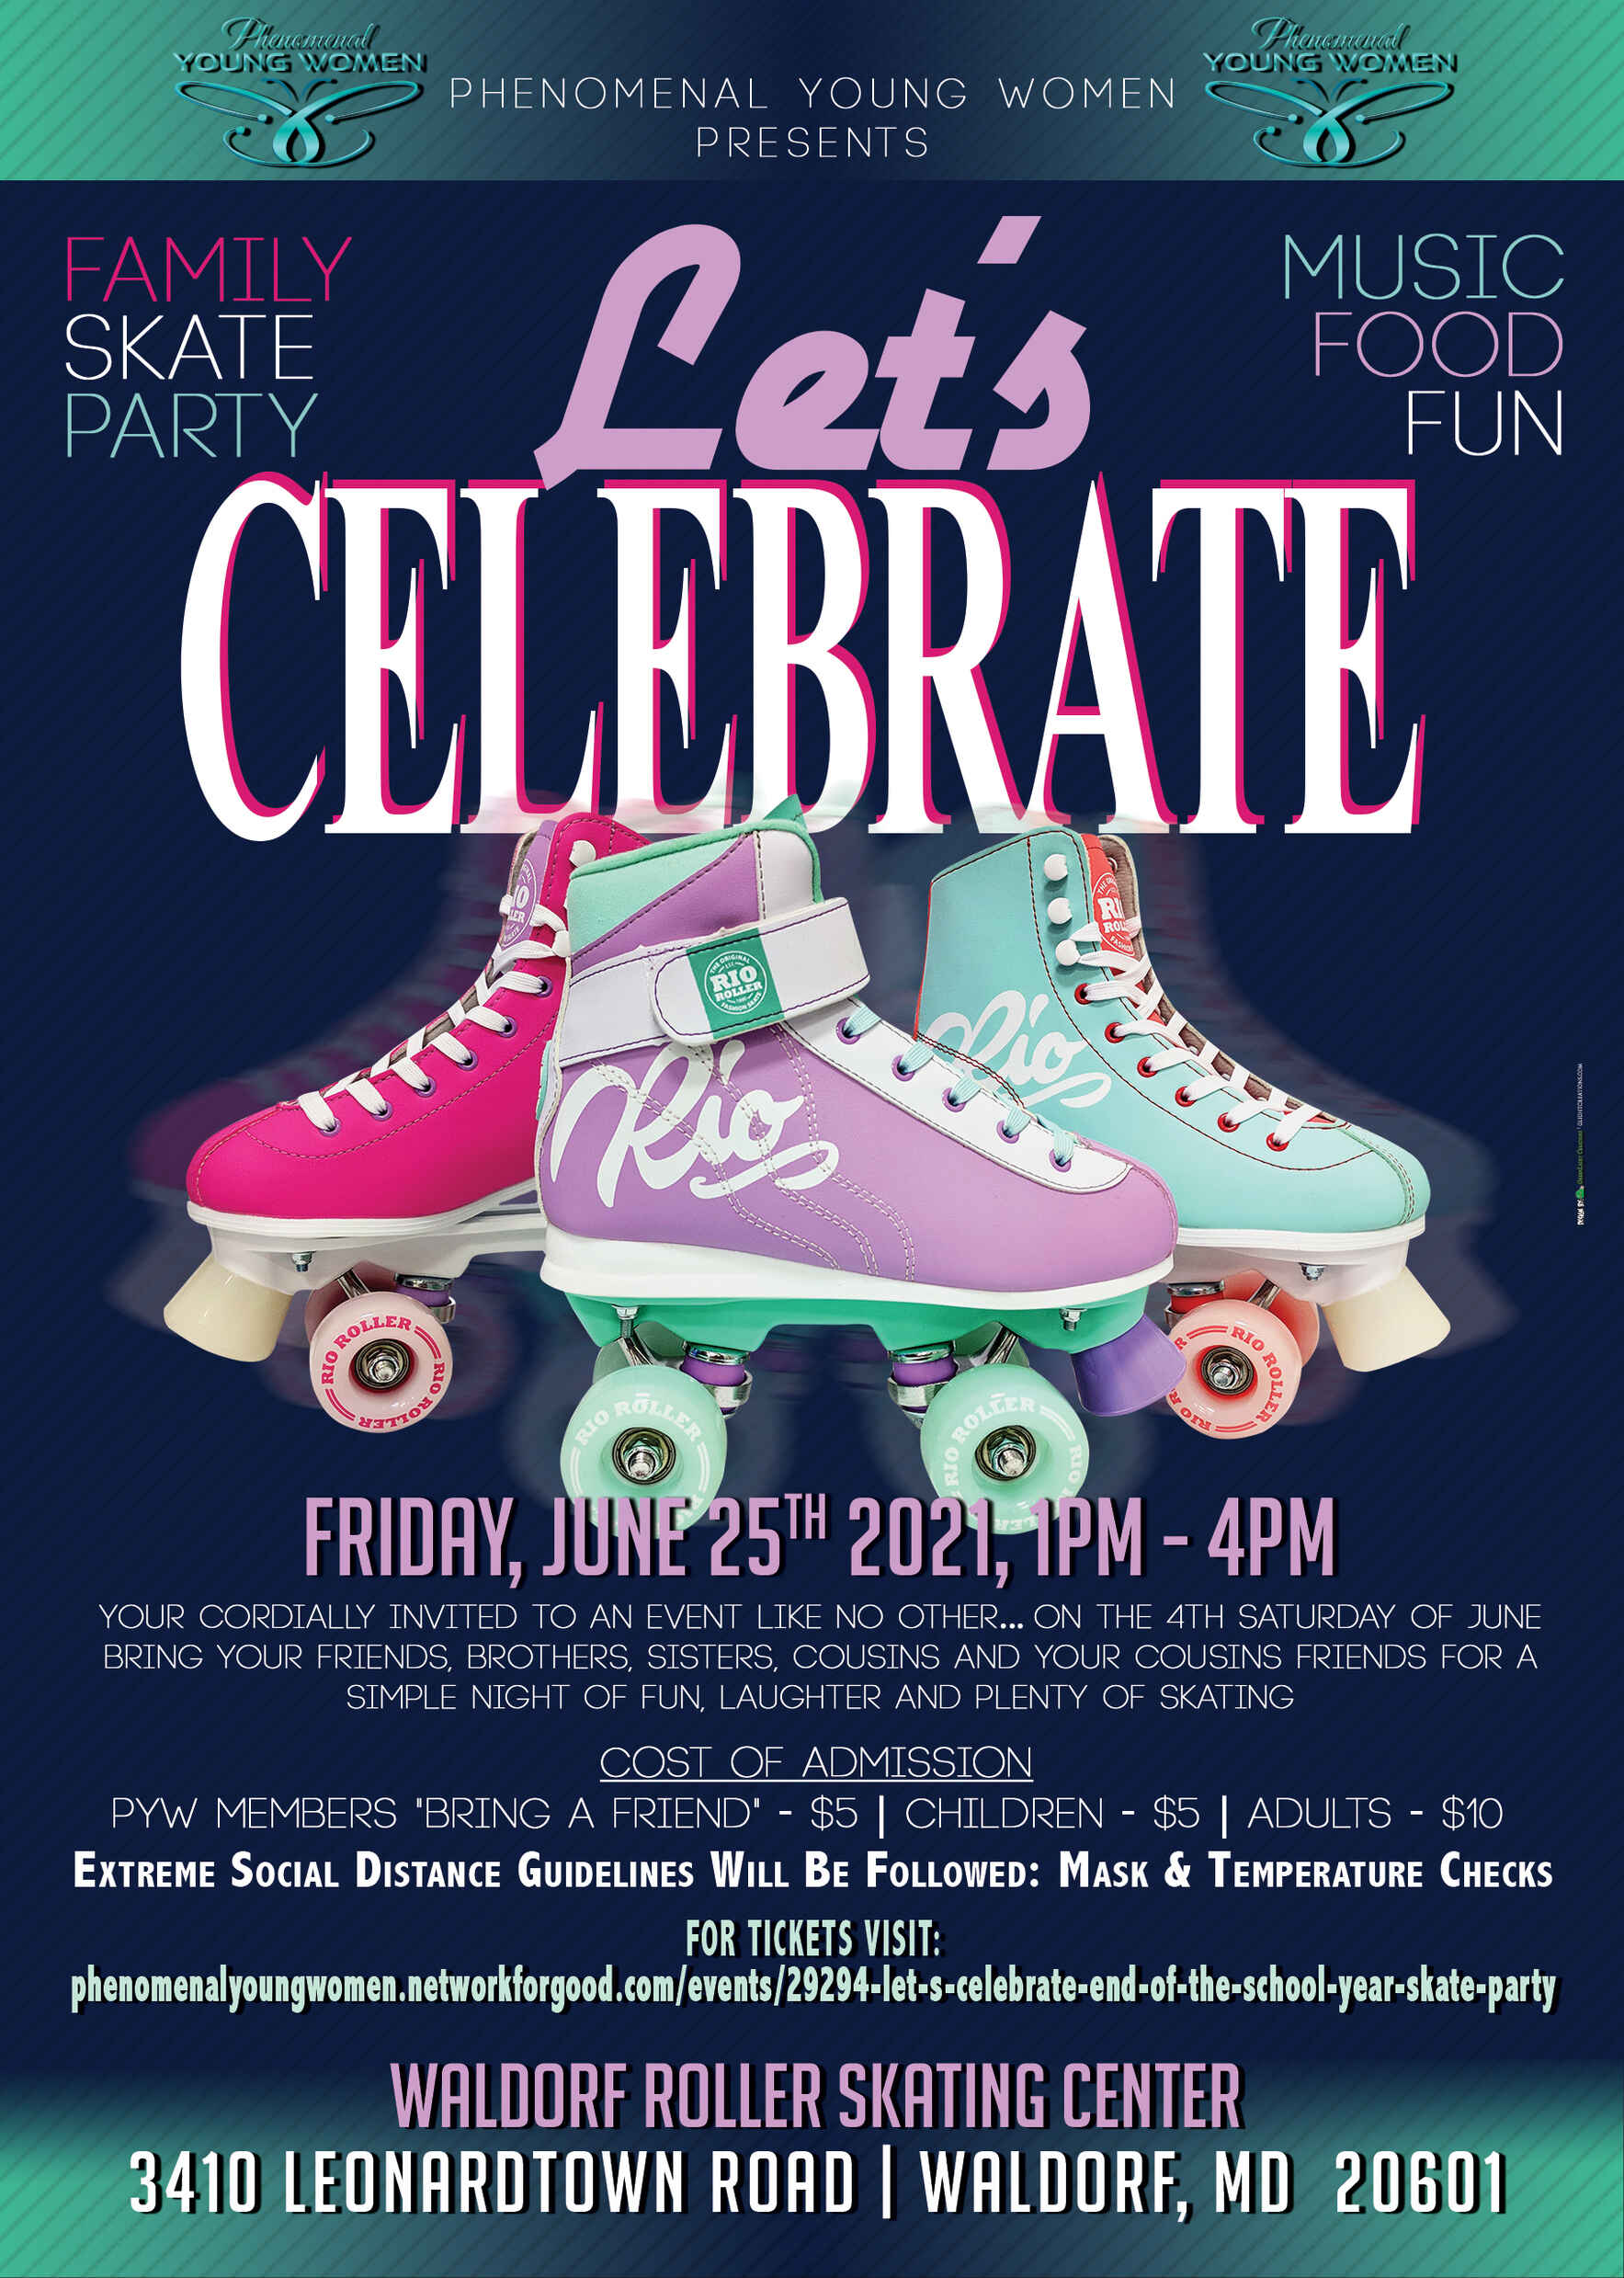 Let's Celebrate End of the School Year Skate Party image